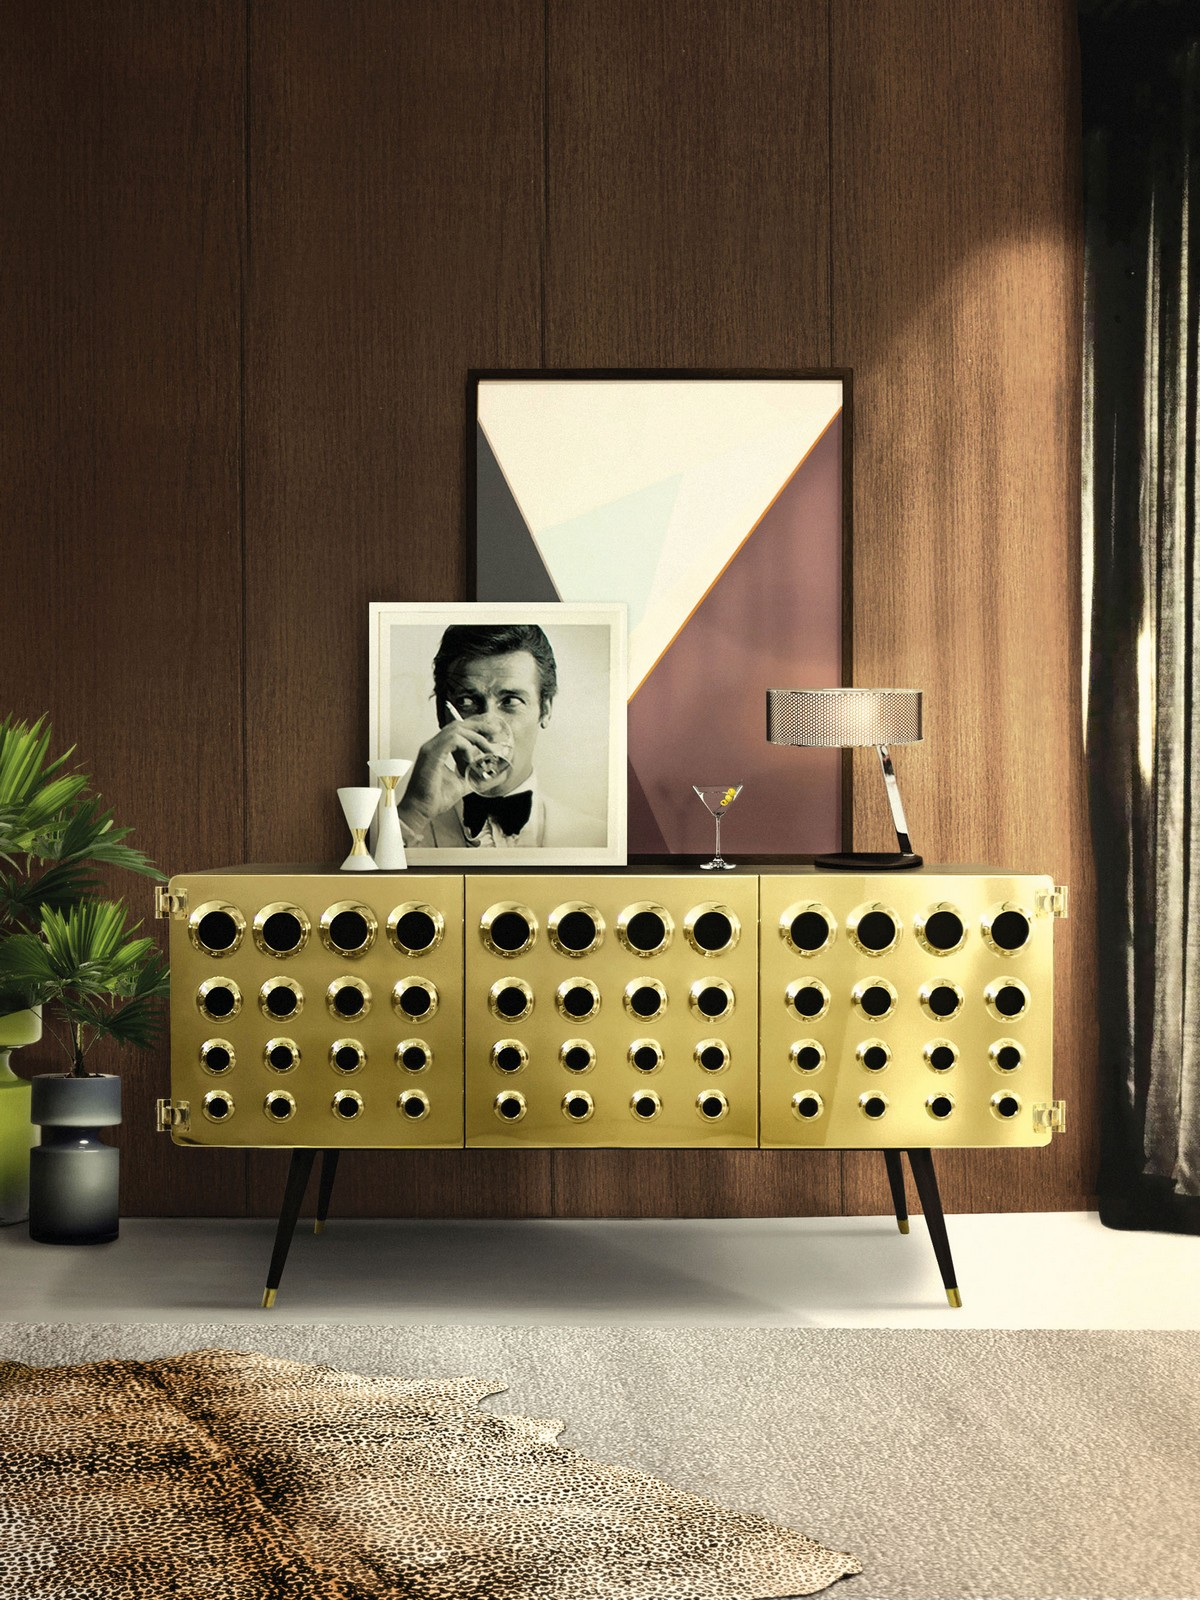 sideboards Mid Century Decor Ideas: Top 5 Sideboards That You Will Love! monocles